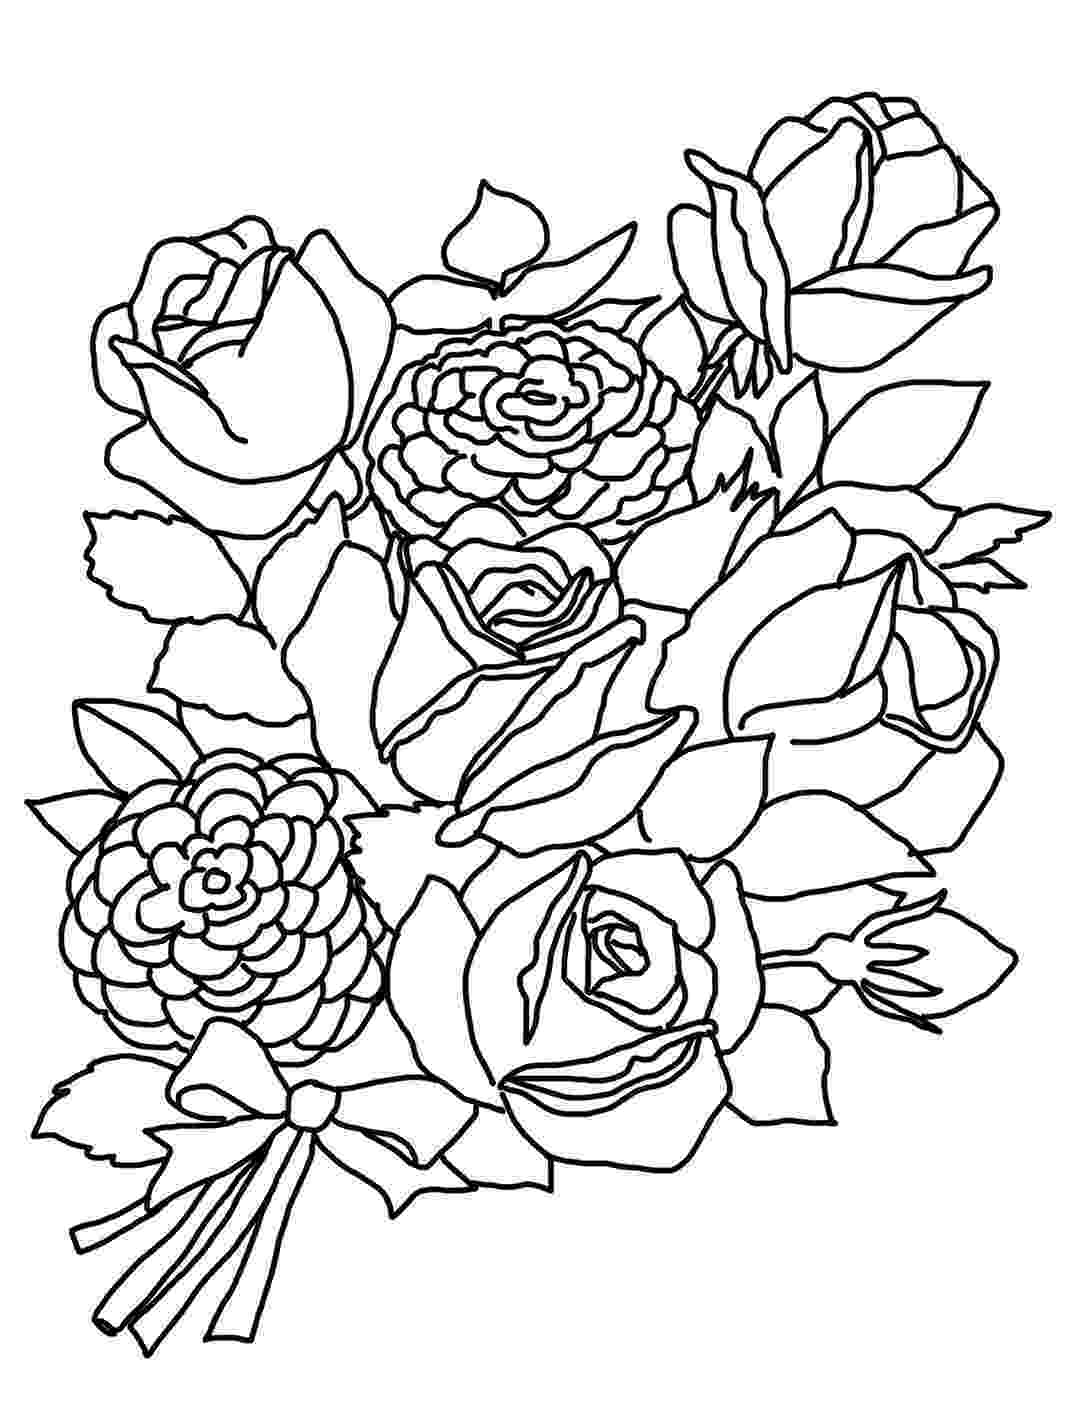 rose coloring pages free printable roses coloring pages for kids coloring pages rose